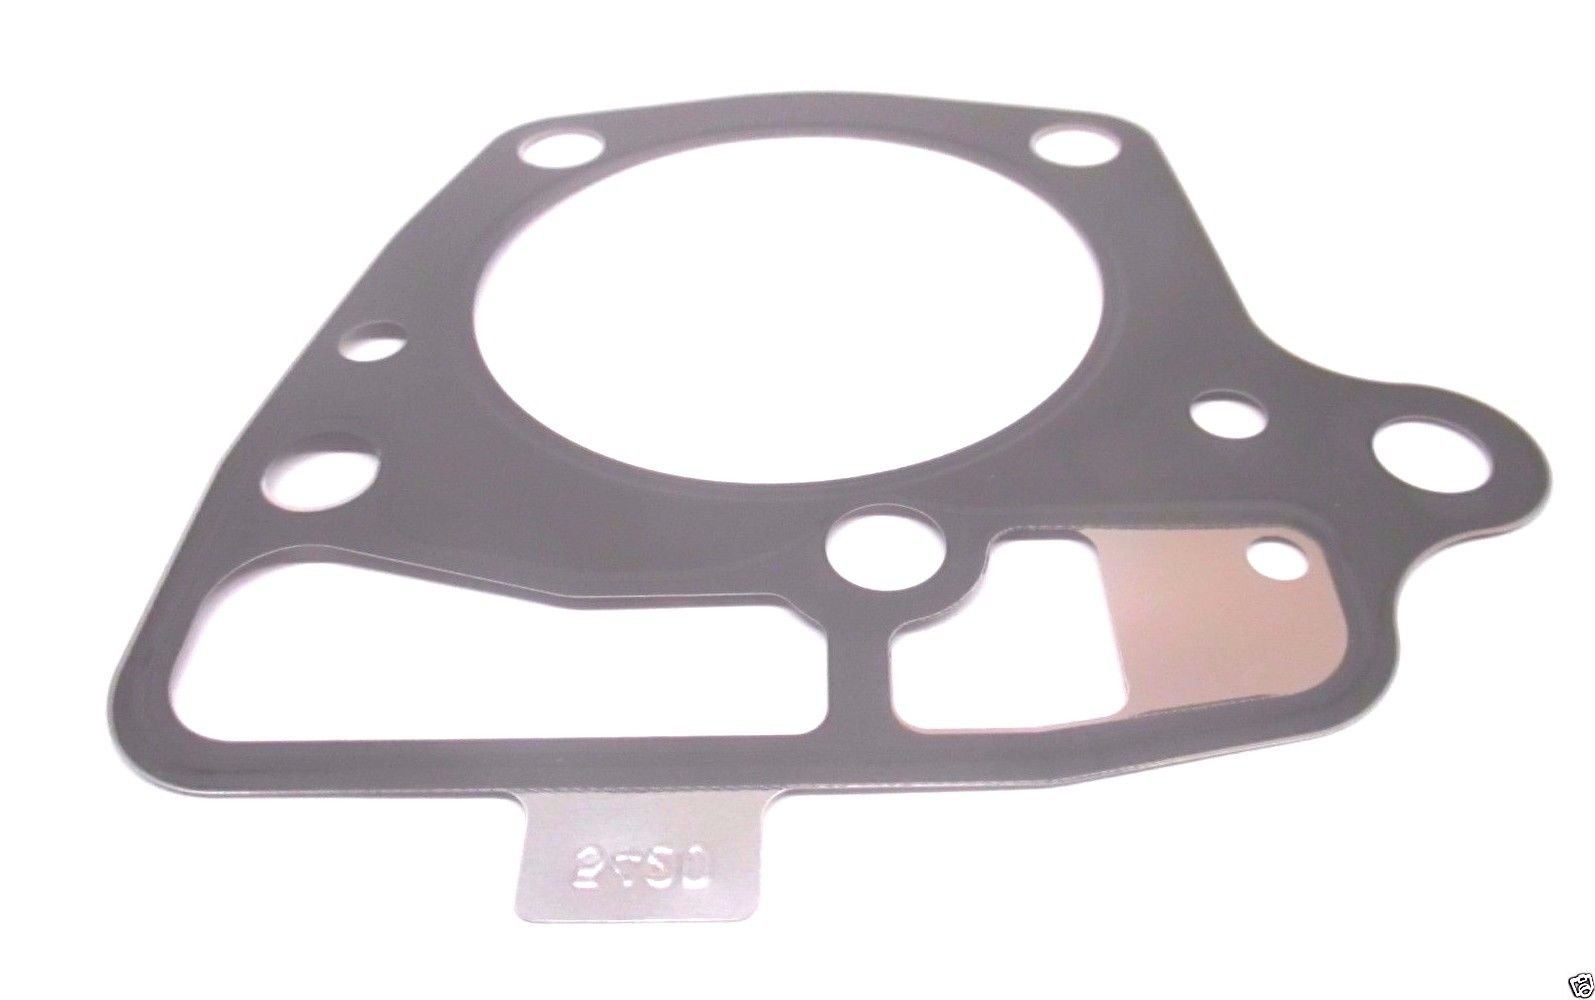 Kawasaki 11004-7026 Lawn & Garden Equipment Engine Cylinder Head Gasket